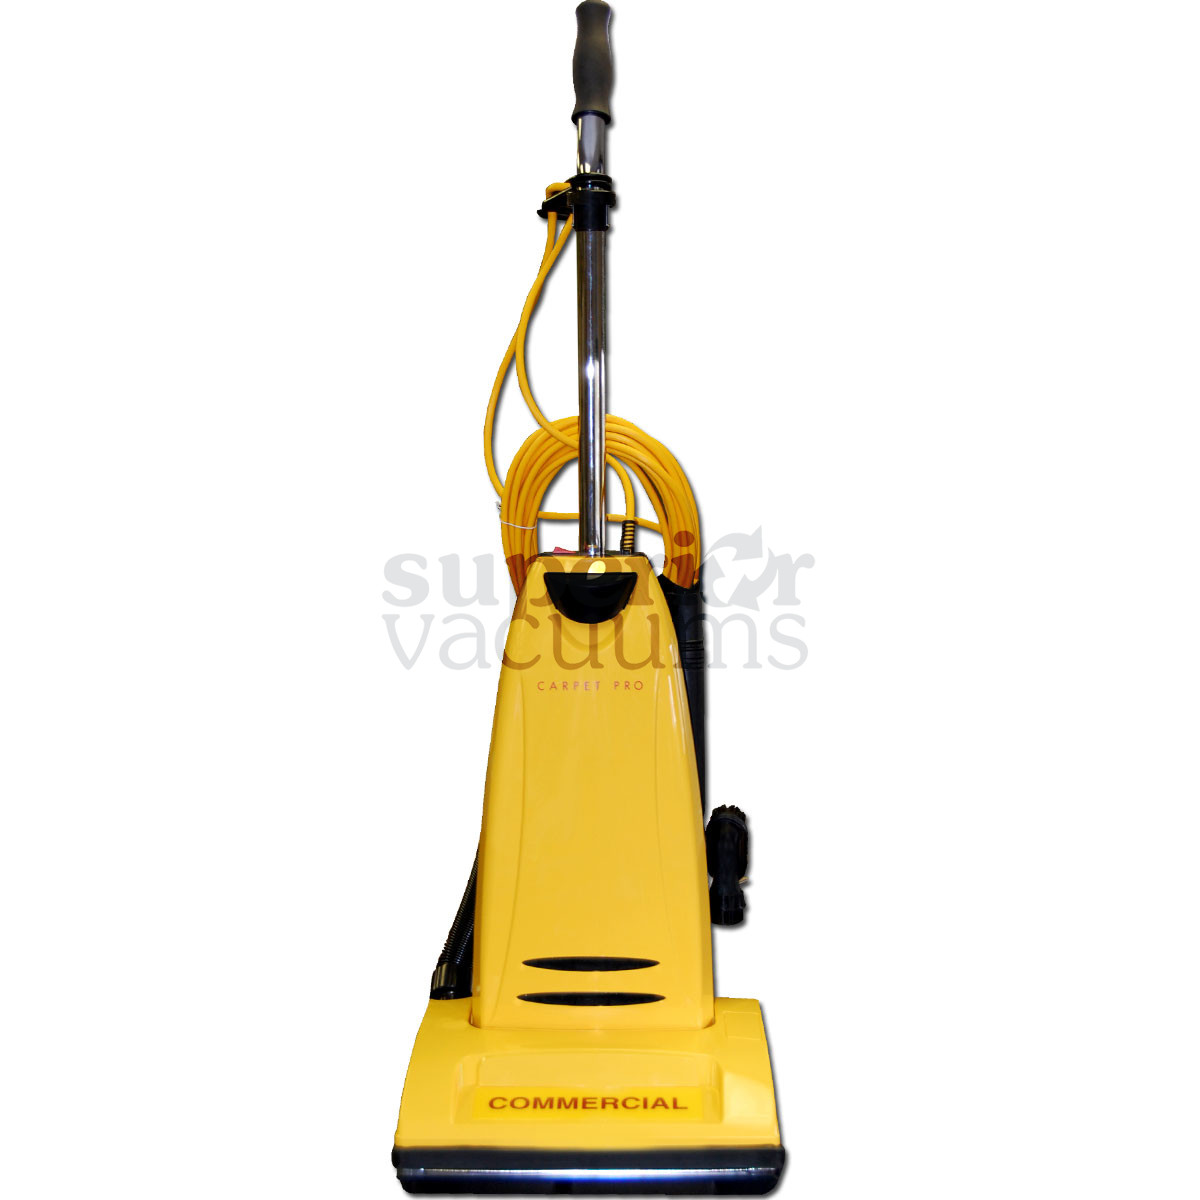 Pro Model Cpu2T Commercial Upright Vacuum With Onboard Tools Metal Handle And Bottom Plate 1 Yr Warranty 10 Amp 40' Cord 72Db 20Lb